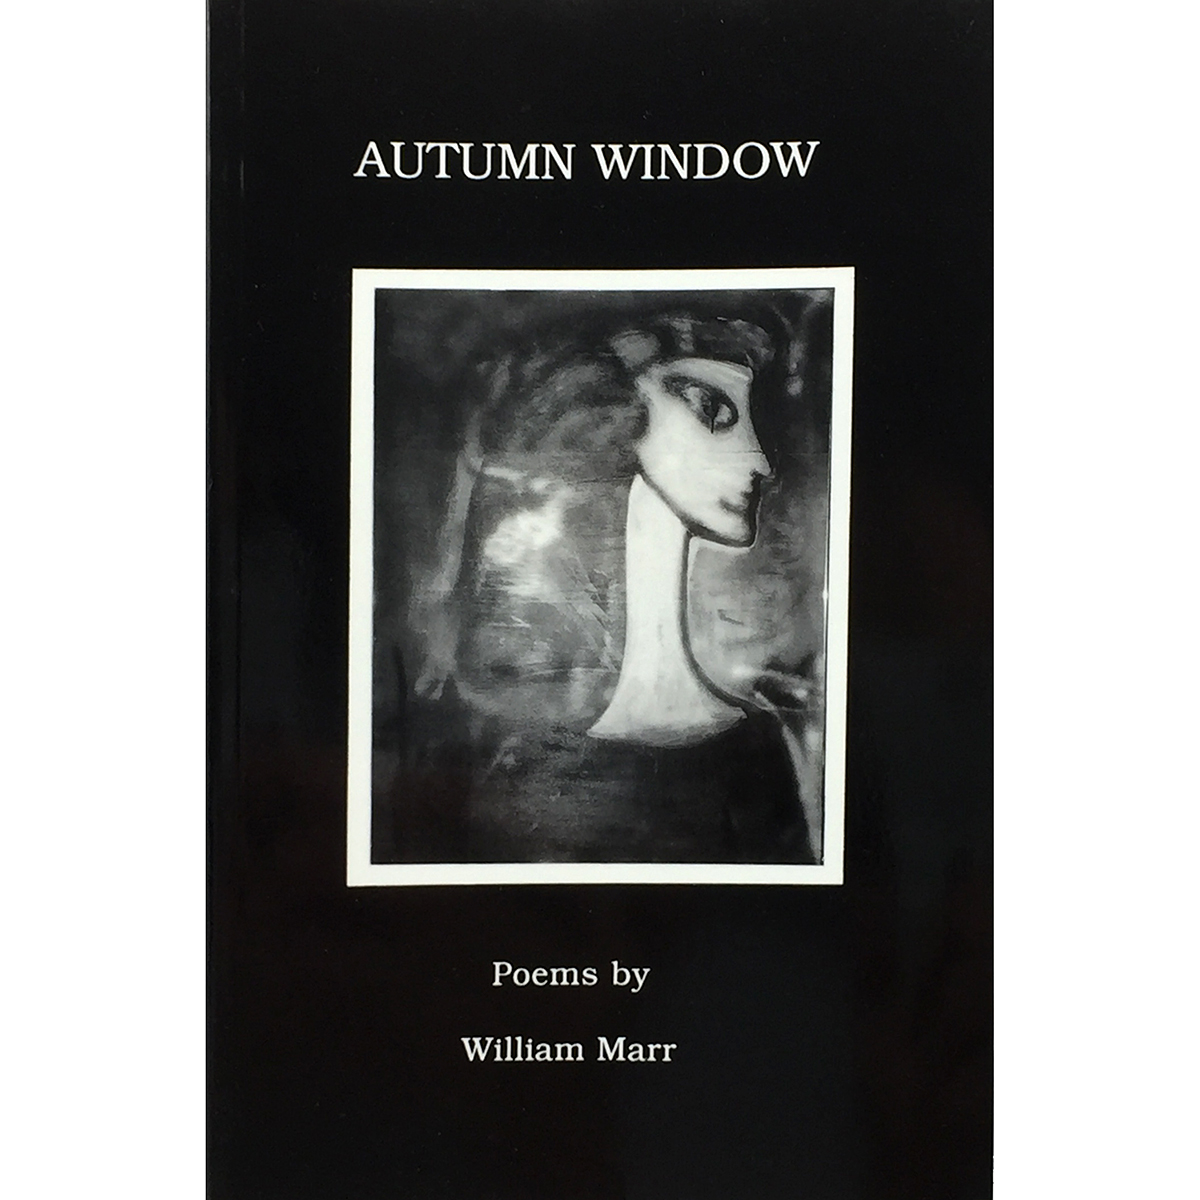 Autumn Window by William Marr